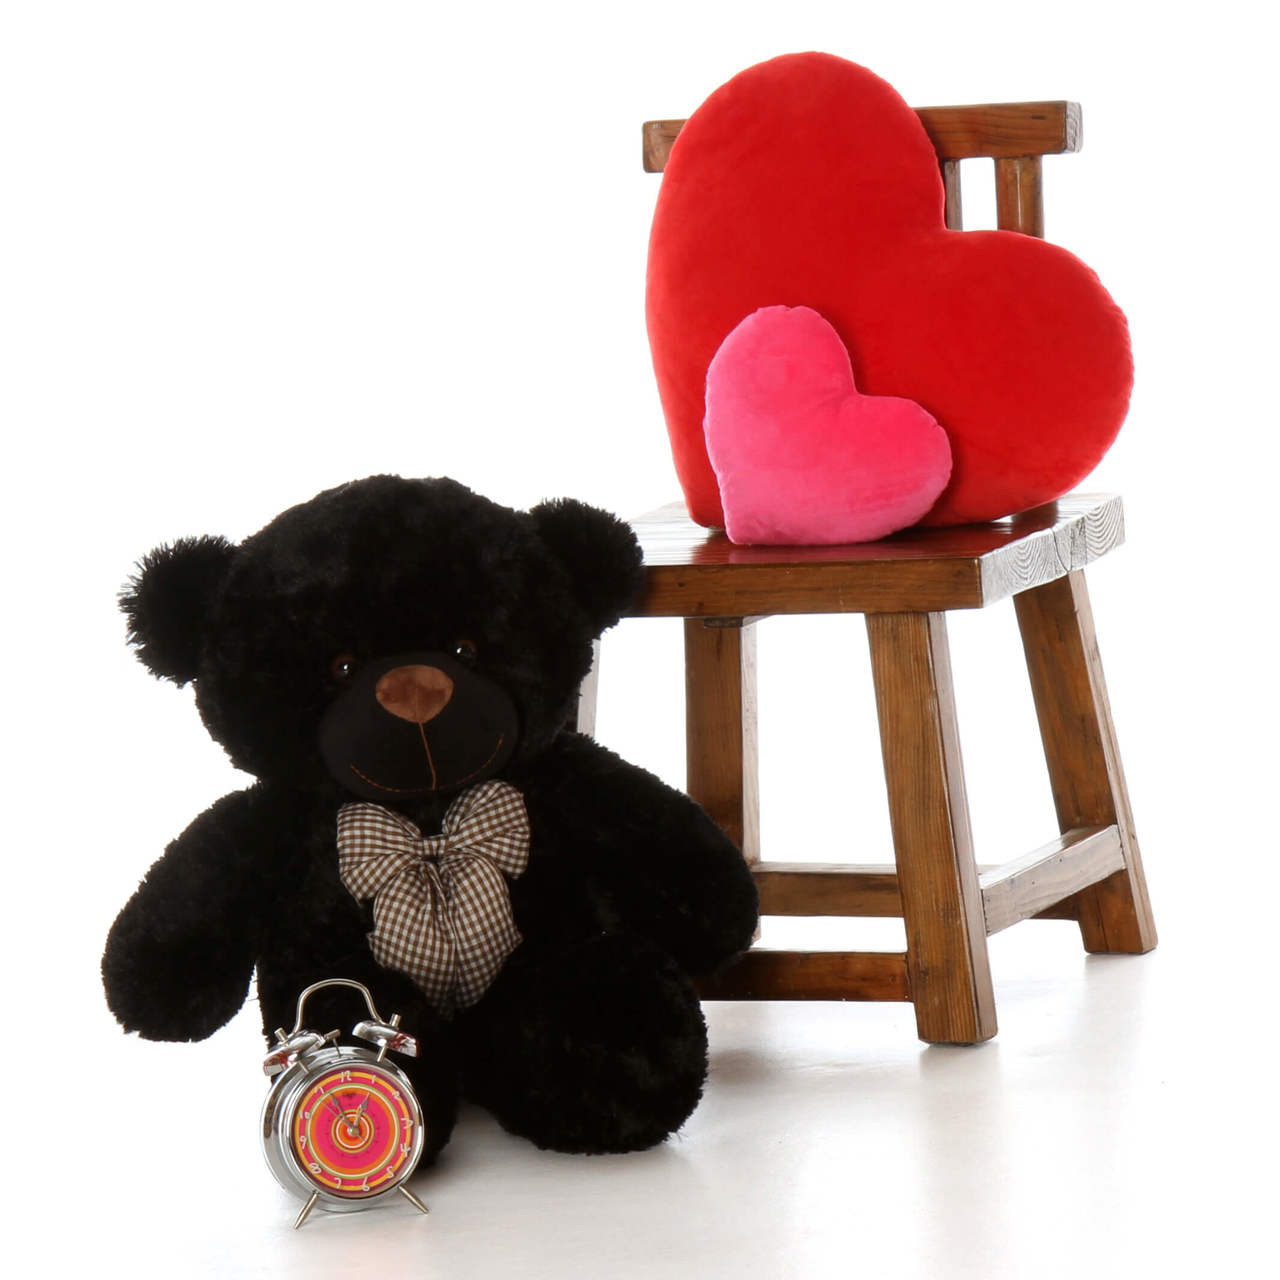 Big 2.5ft oversized black teddy bear Juju Cuddles soft and huggable, perfect gift for someone beary special